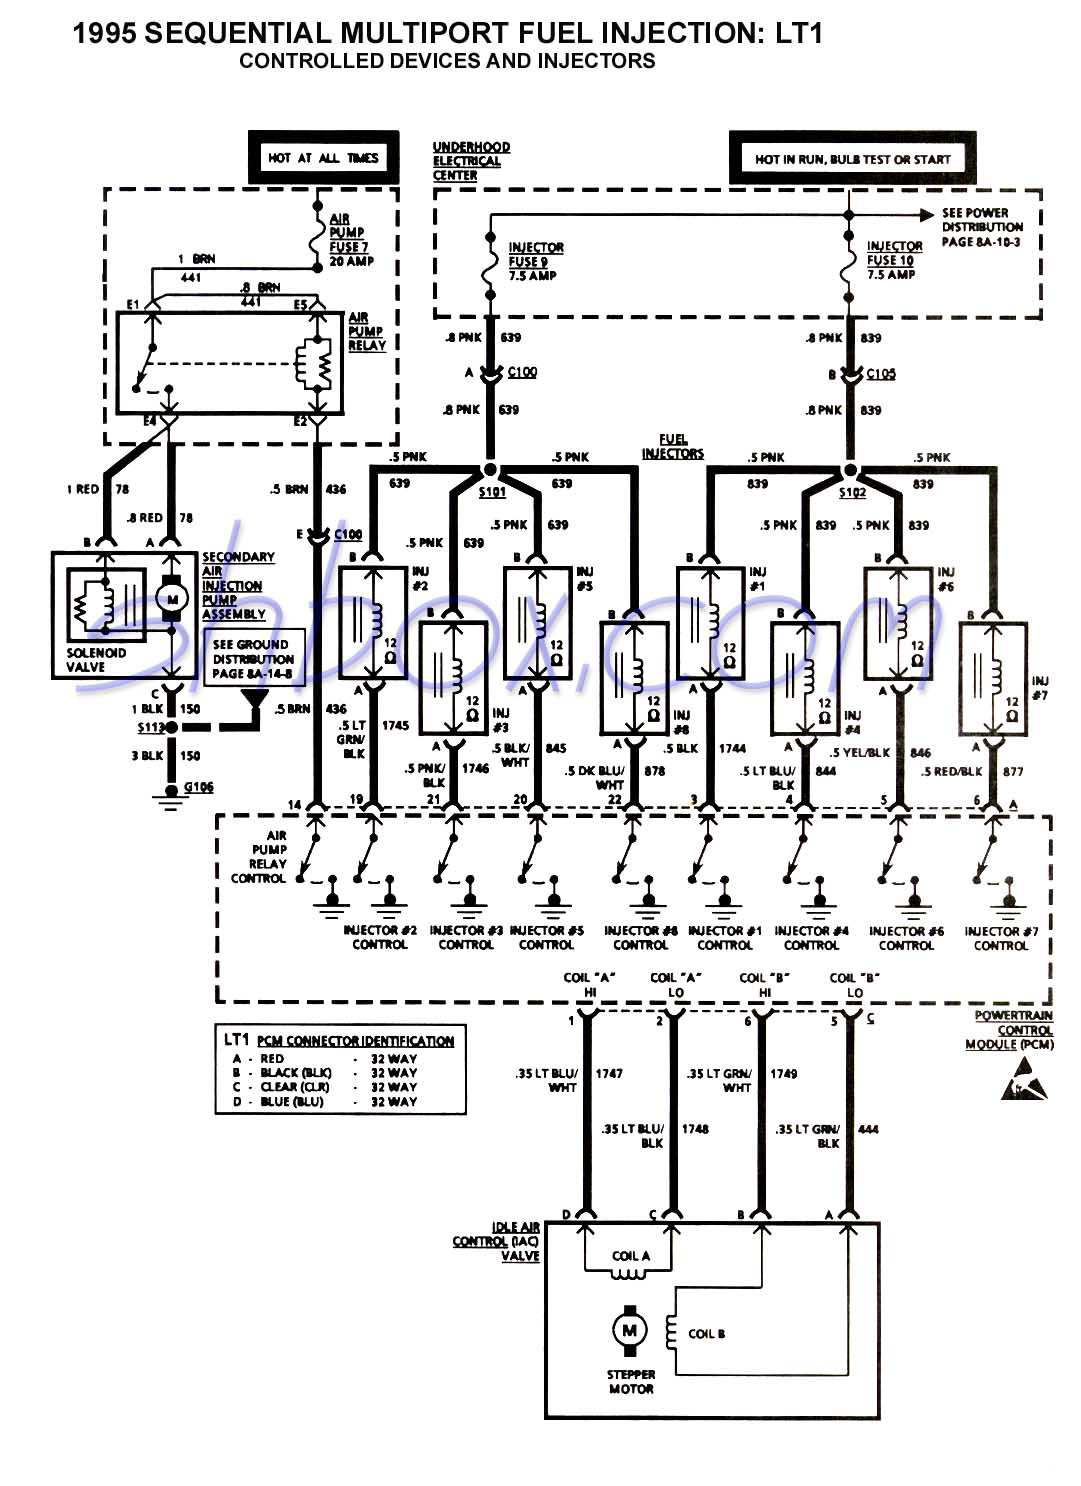 hight resolution of smfi controlled devices and injectors schematic